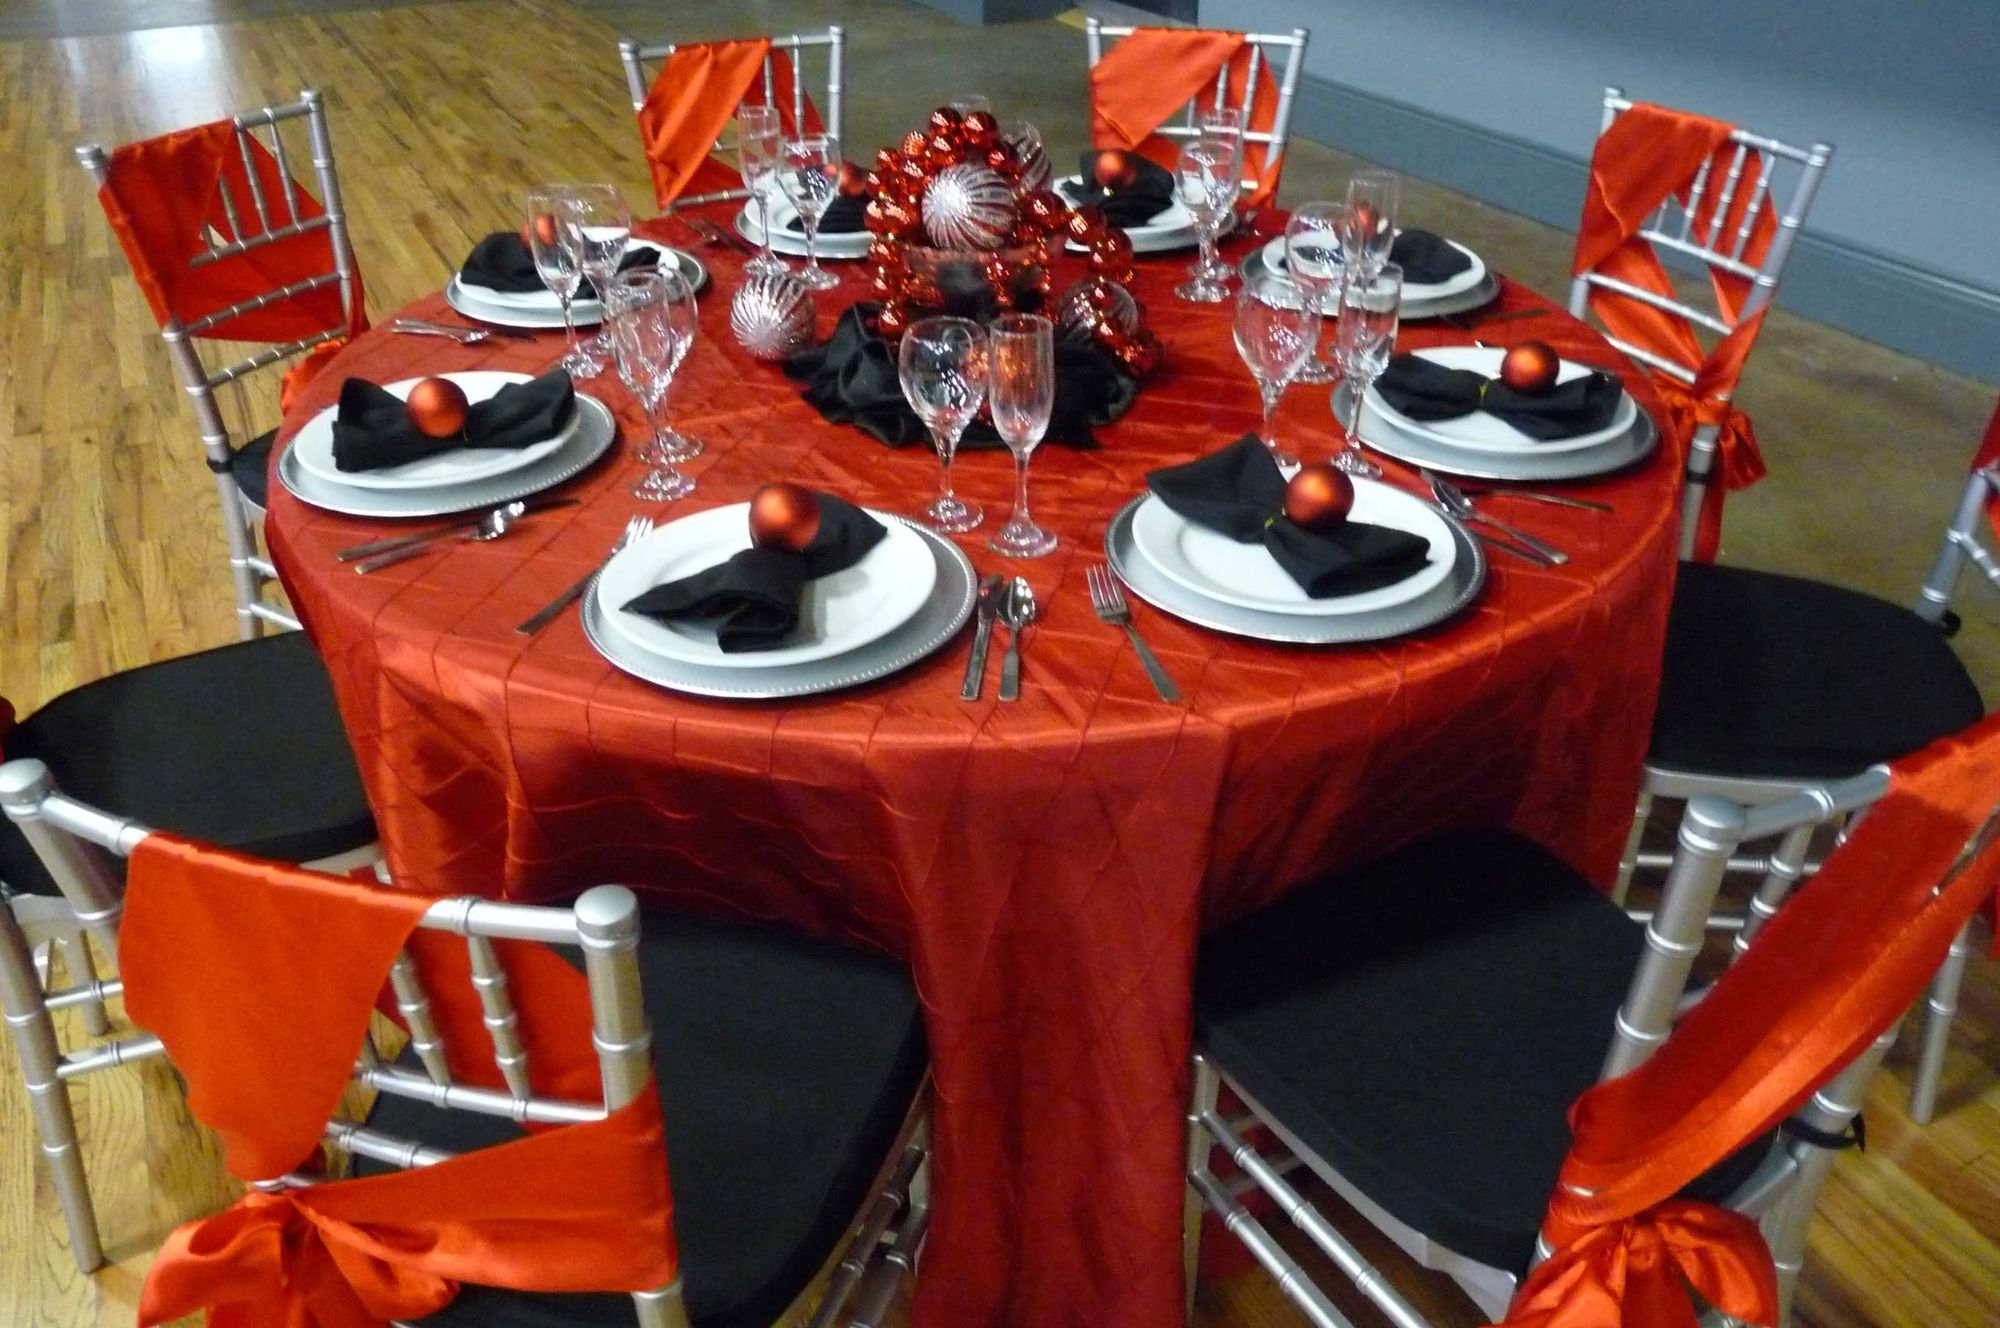 Infinity_Event_Corporate_Holiday_Parties_Christmas Table Decor 2.jpg